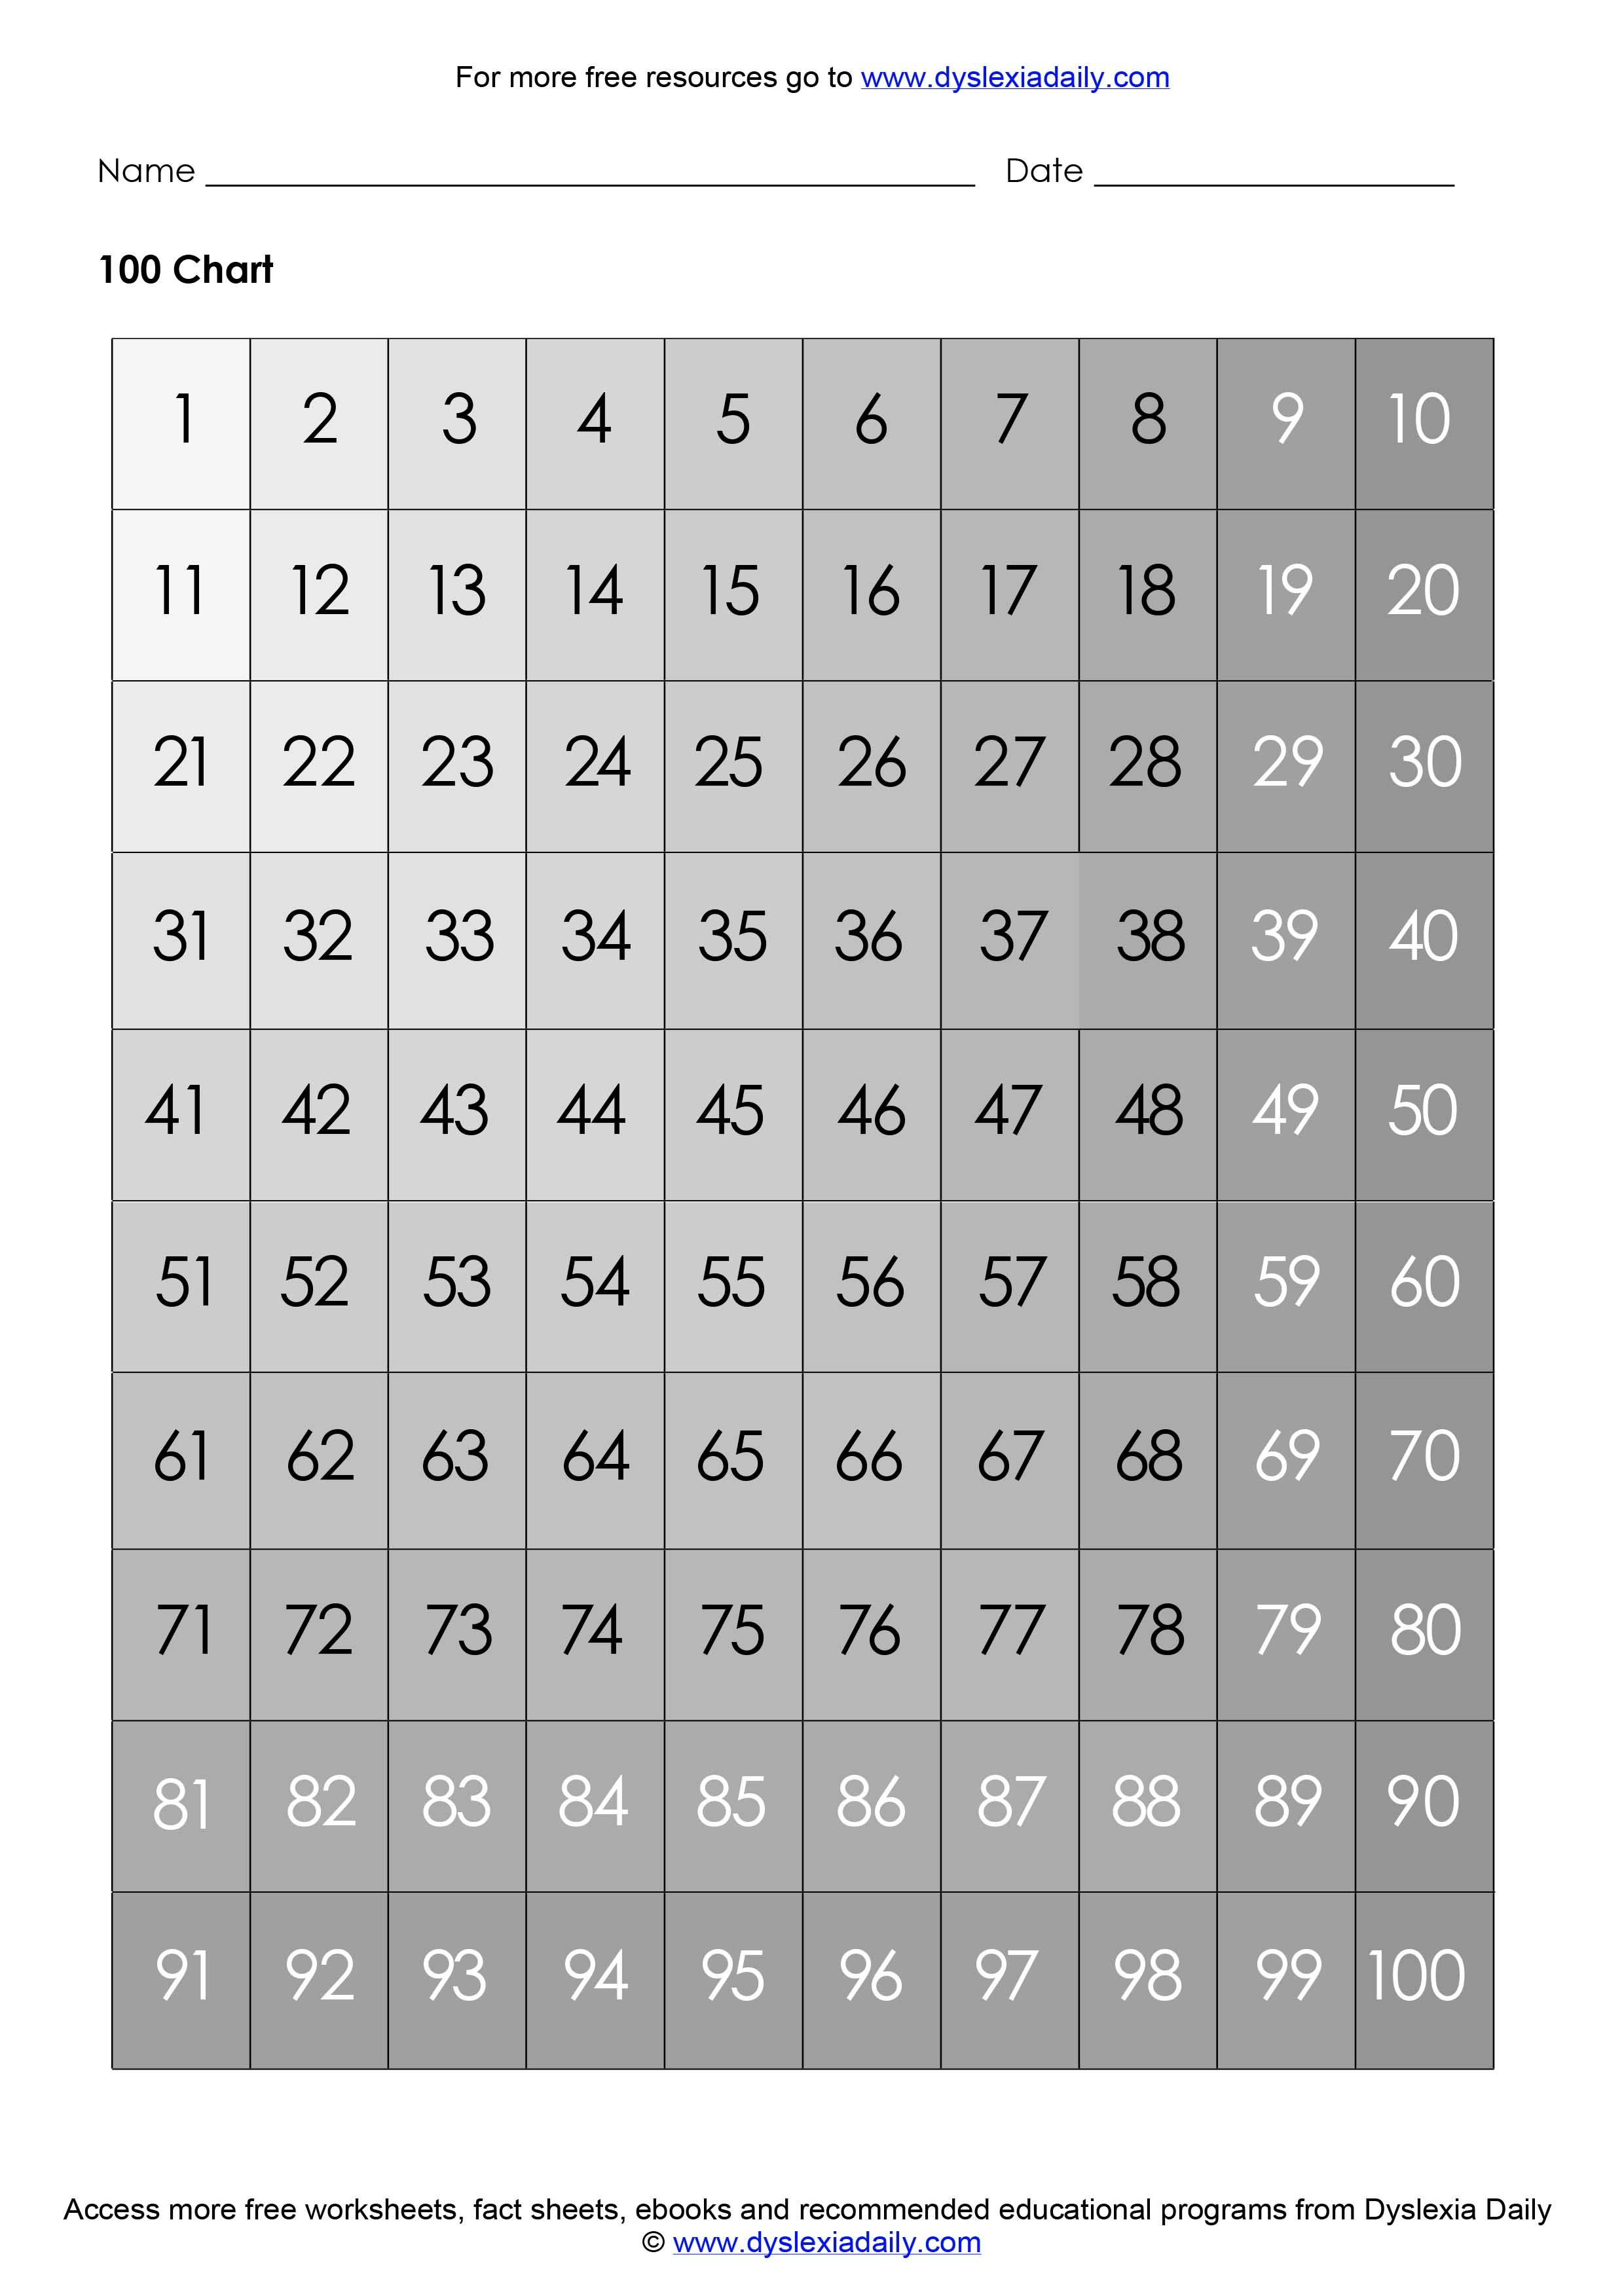 Free Dyslexia Math Worksheets Downloads  Dyslexia Daily Or Worksheets For Dyslexia Spelling Pdf